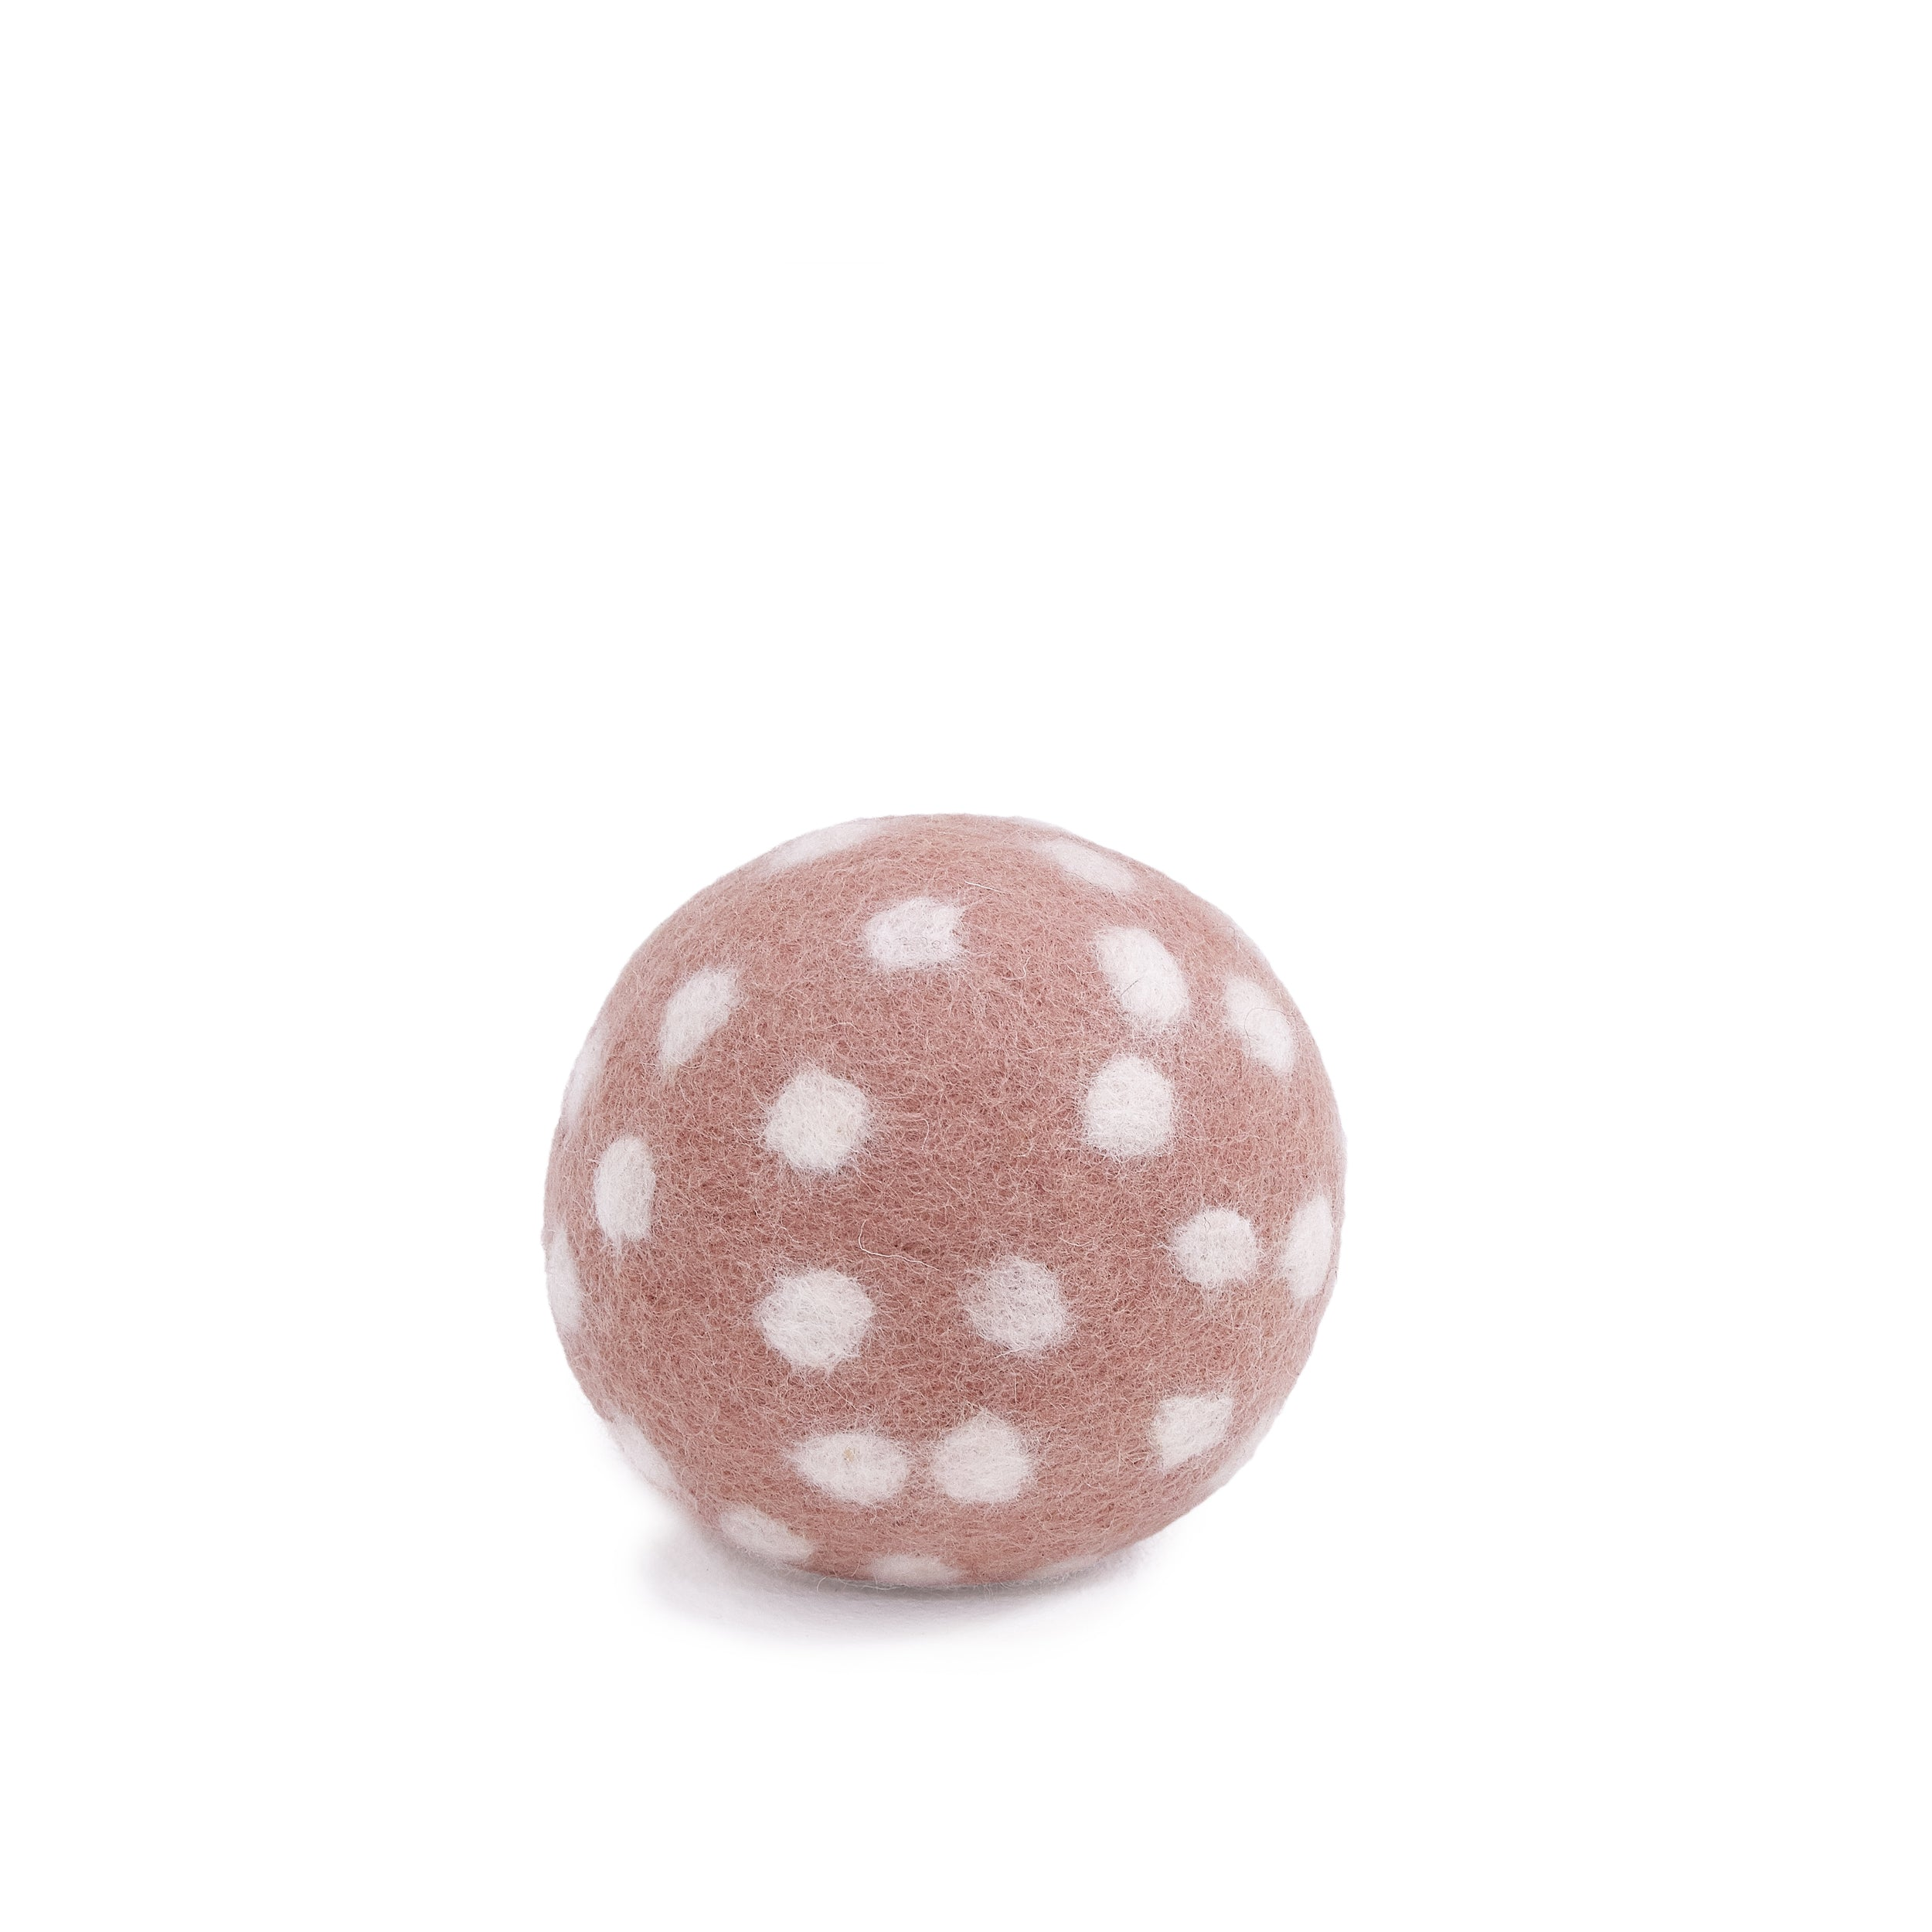 Paddy Spotty Ball - Quartz Pink